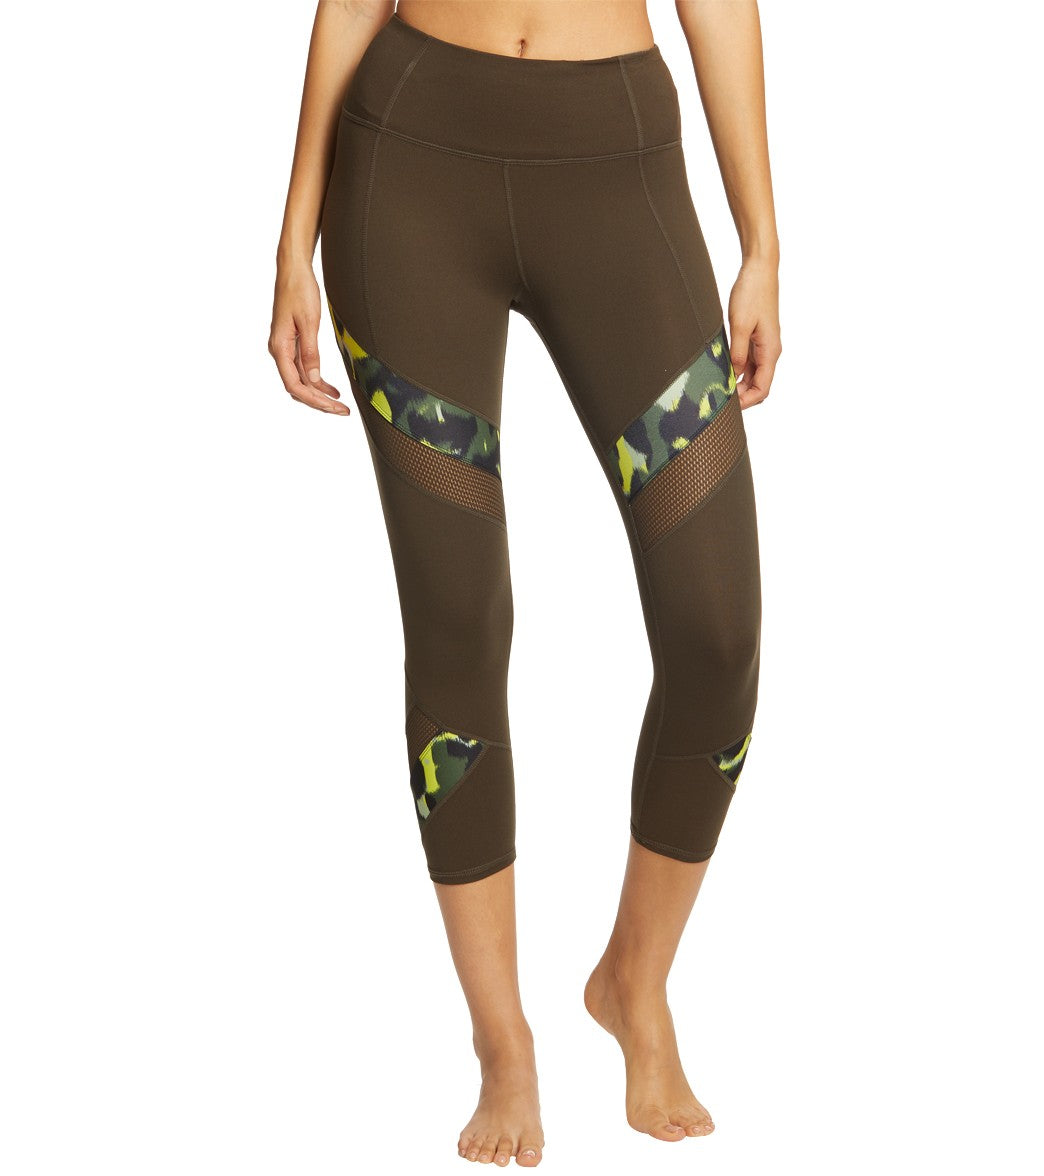 Betsey Johnson Performance High Rise Solid With Print Mesh Yoga Capri Pants - Moss Spandex